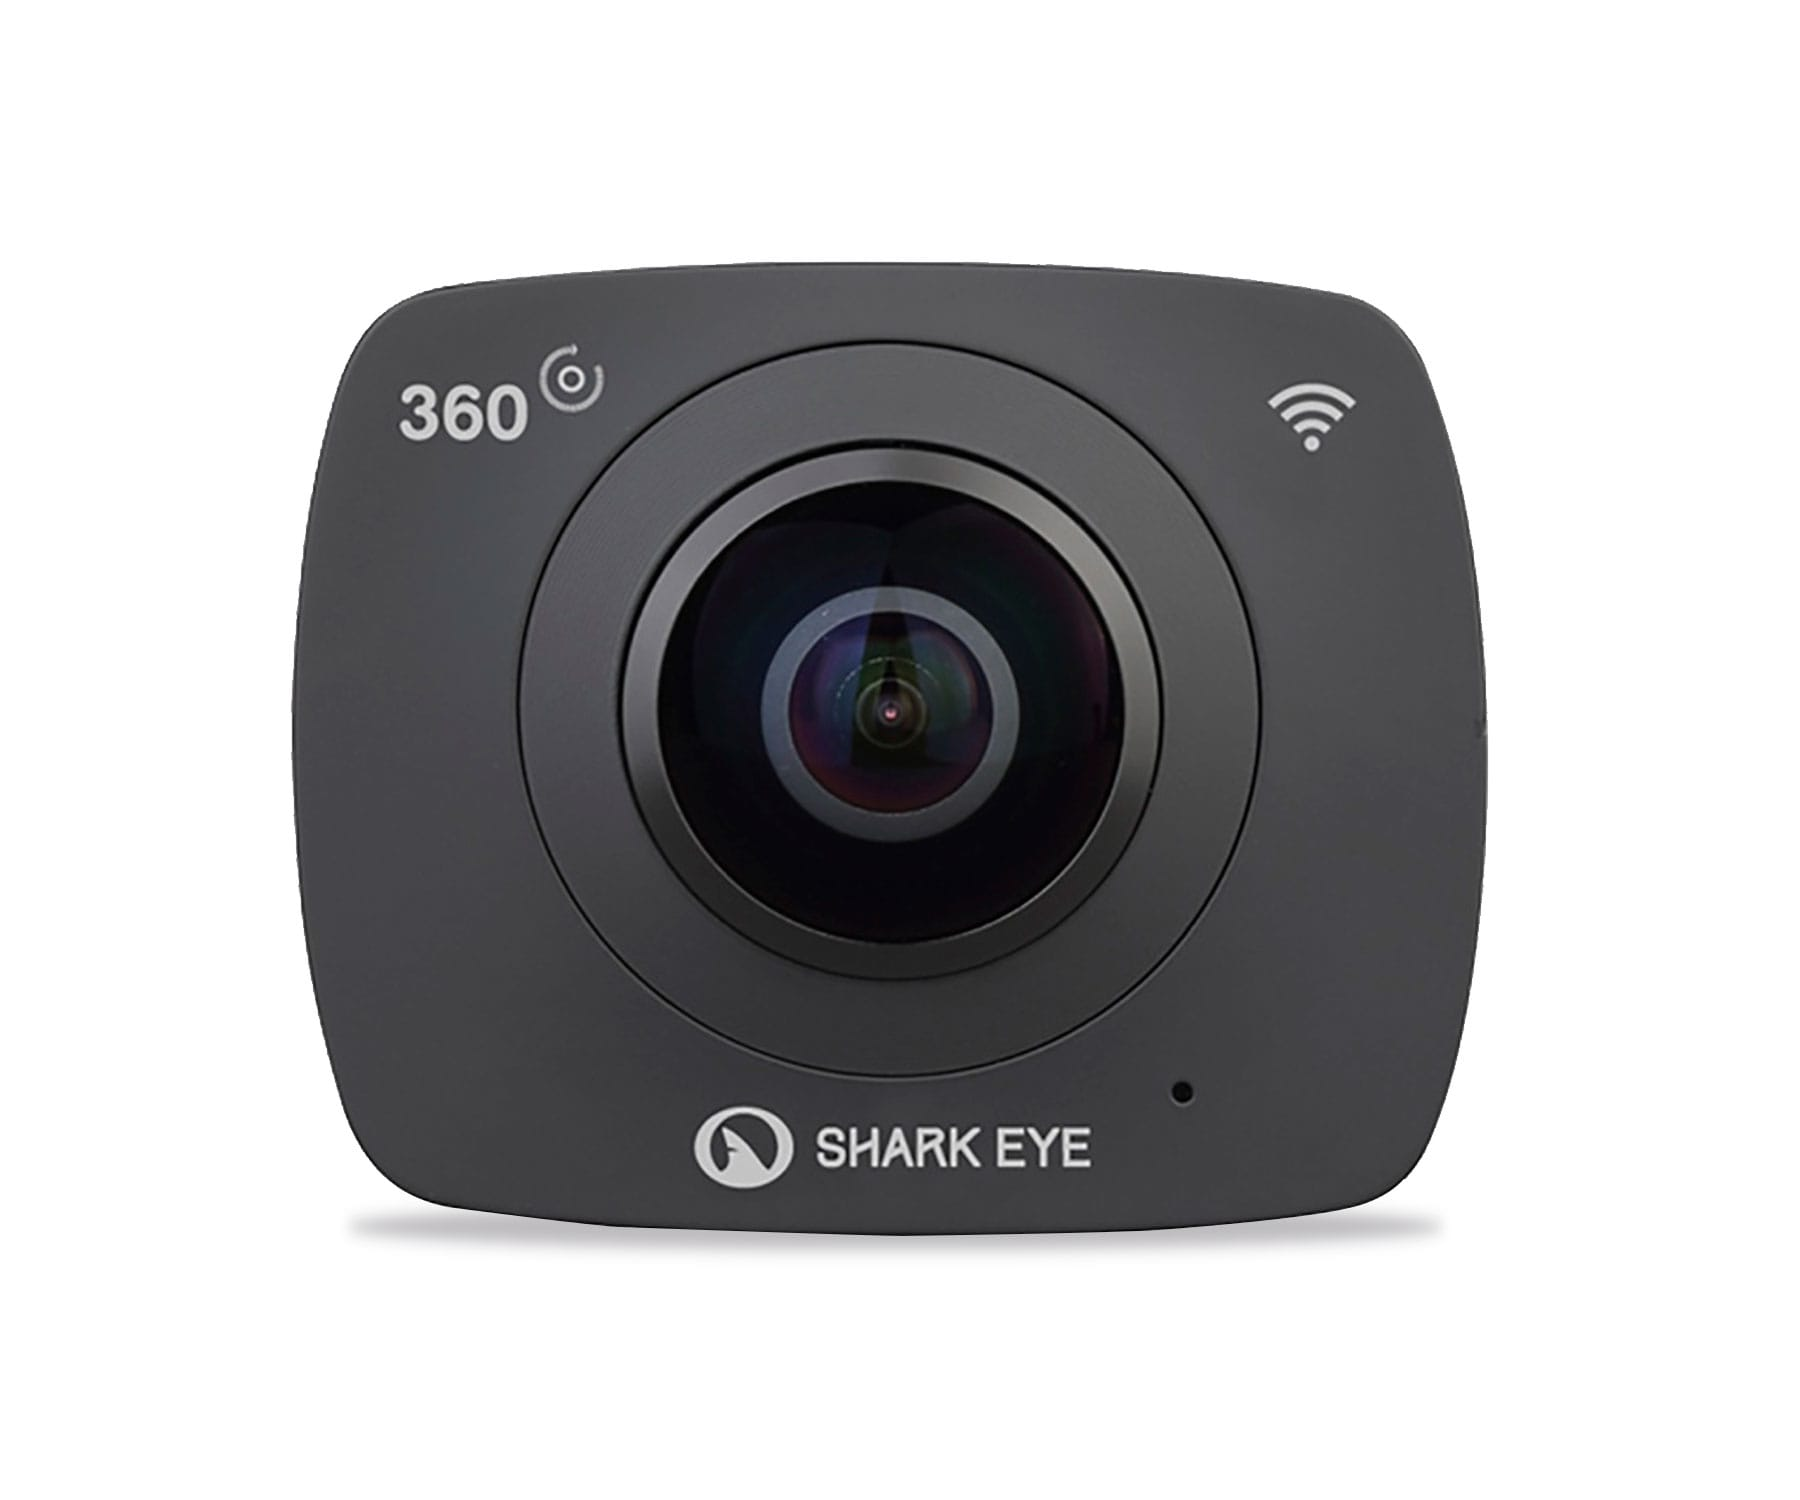 SHARK EYE 360VR CAMERA VIDEO DIGITAL ESFÉRICA 360º 30 FPS CONECTIVIDAD WIFI